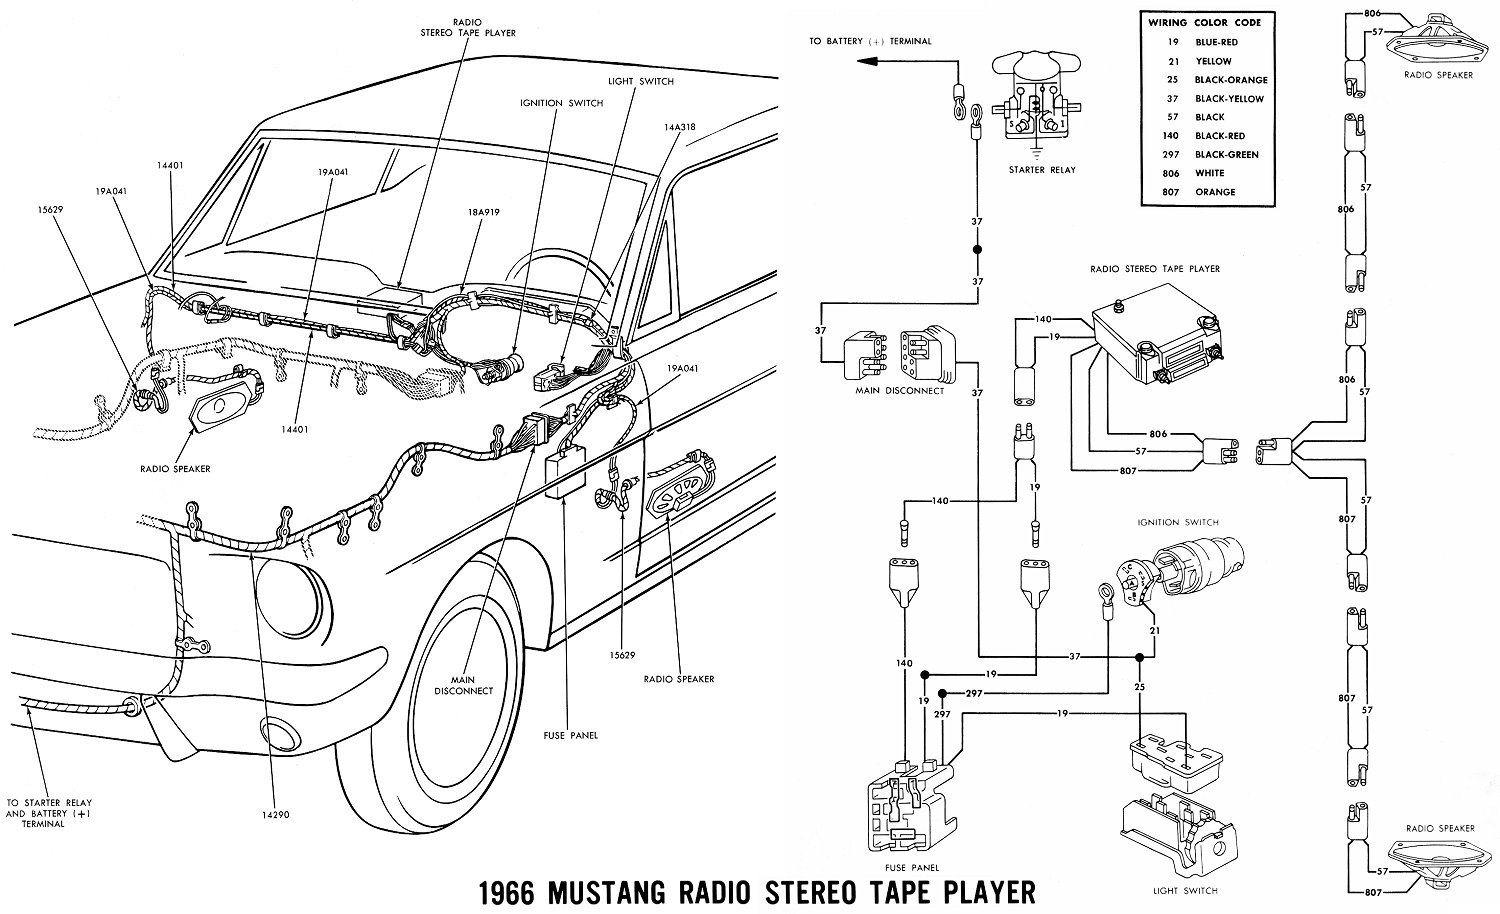 1966 mustang wiring diagrams average joe restoration 1966 Mustang Radio Wiring Diagram